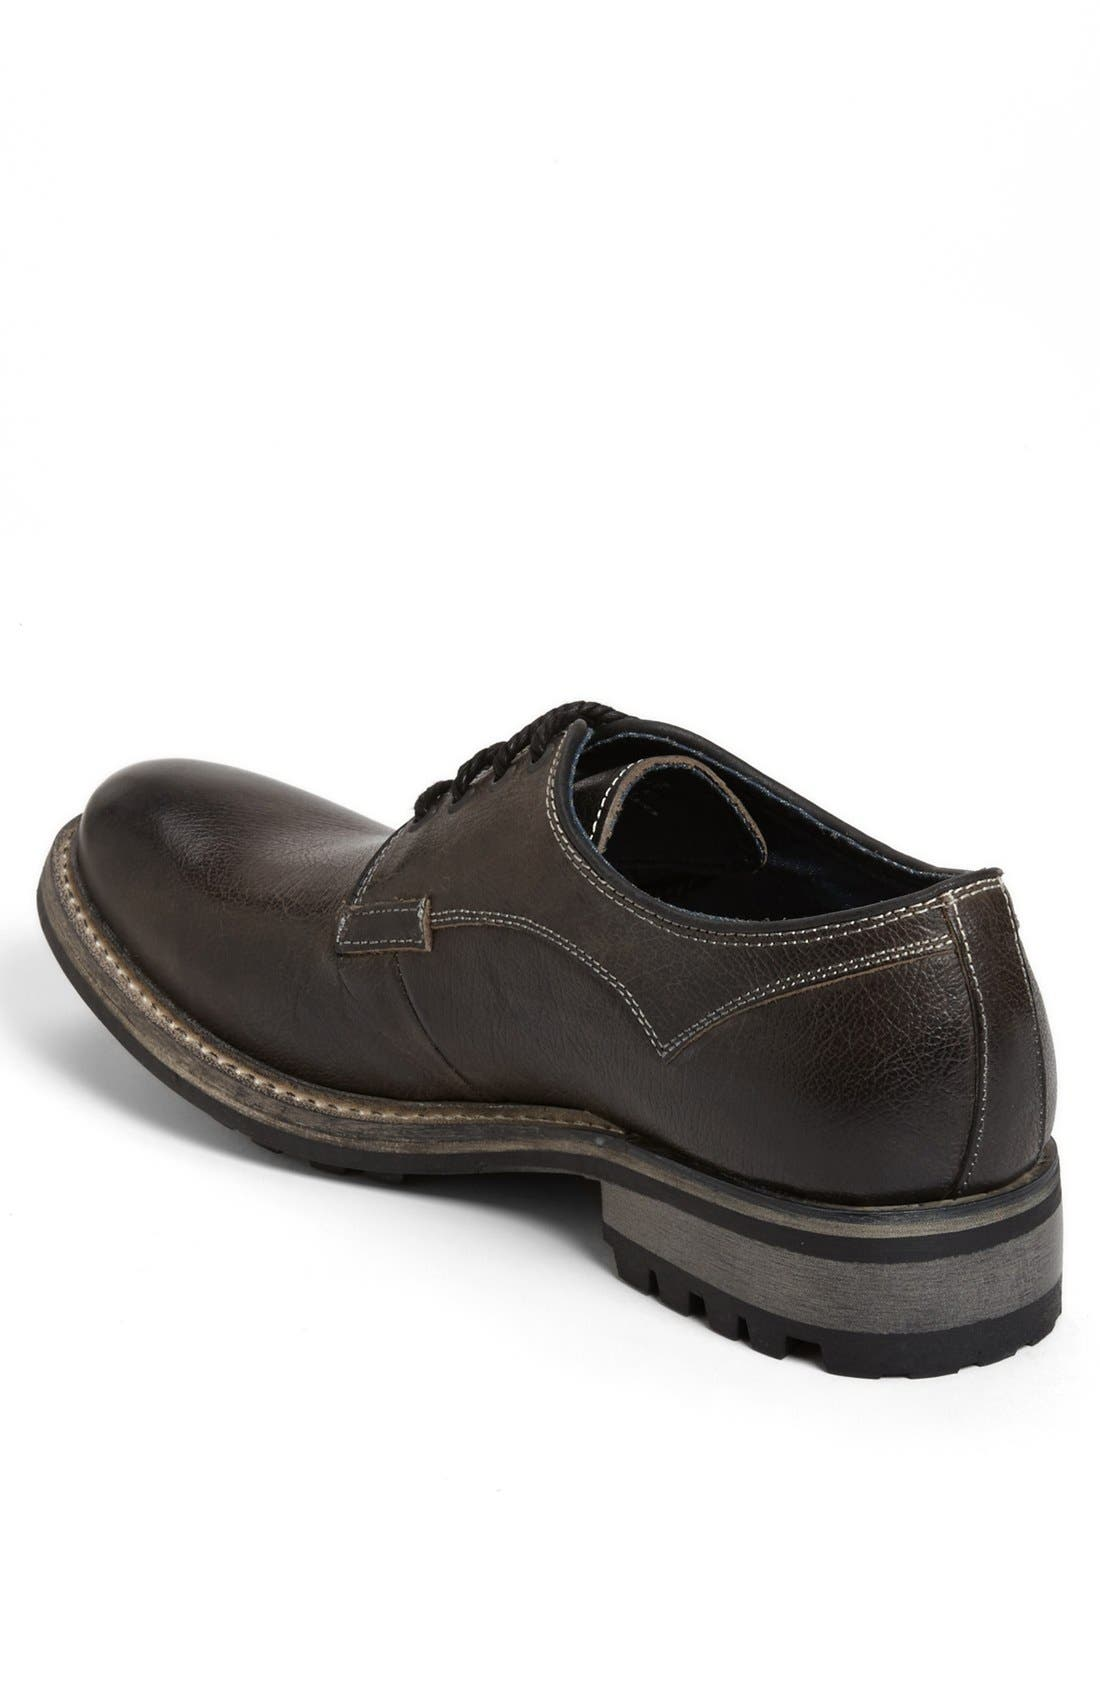 Alternate Image 2  - Kenneth Cole Reaction 'Court Less-Ter' Plain Toe Derby